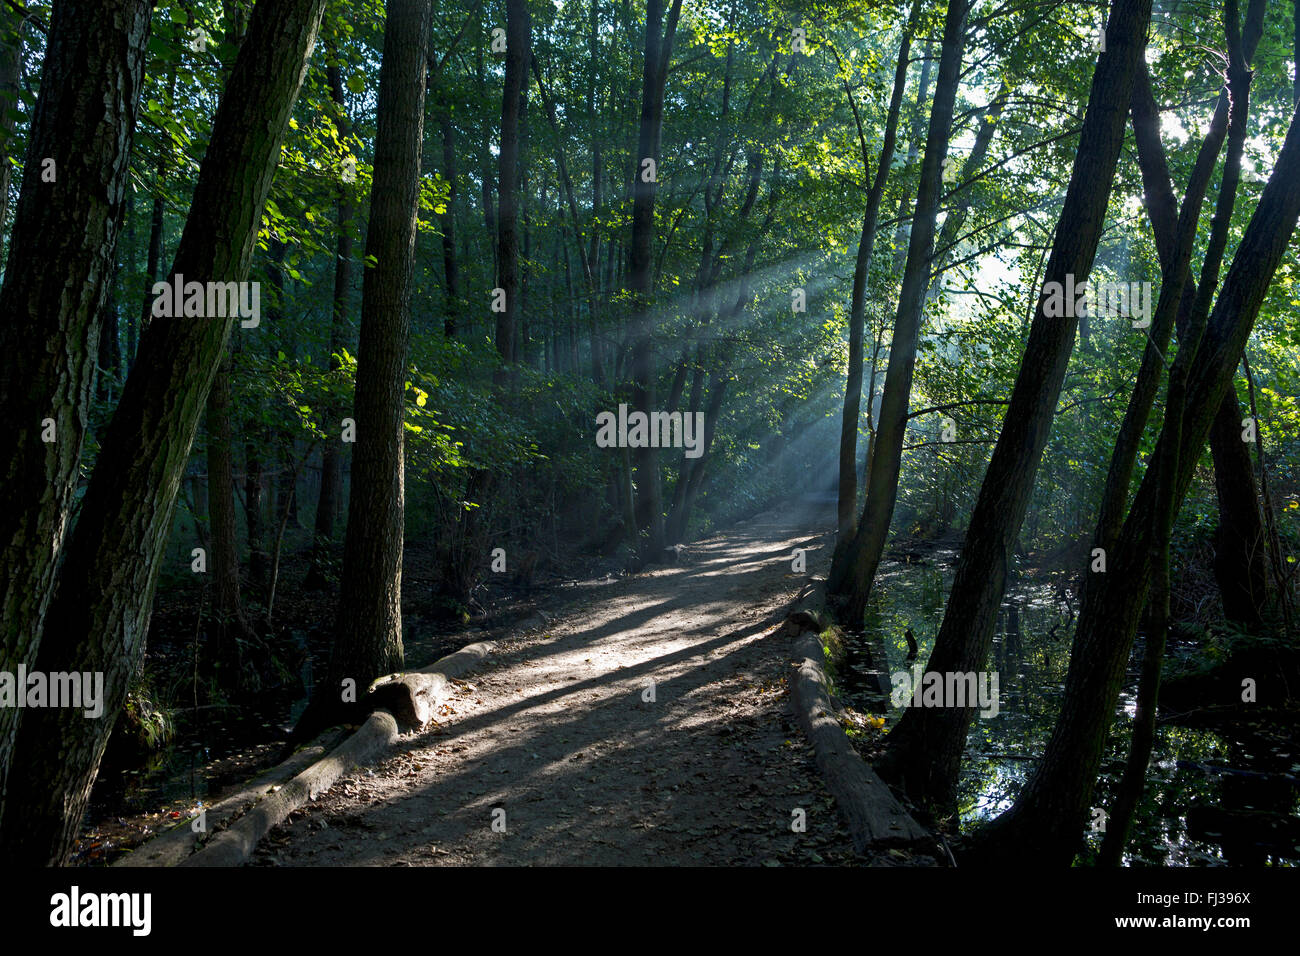 Grunewald forest, Berlin, Germany - Stock Image